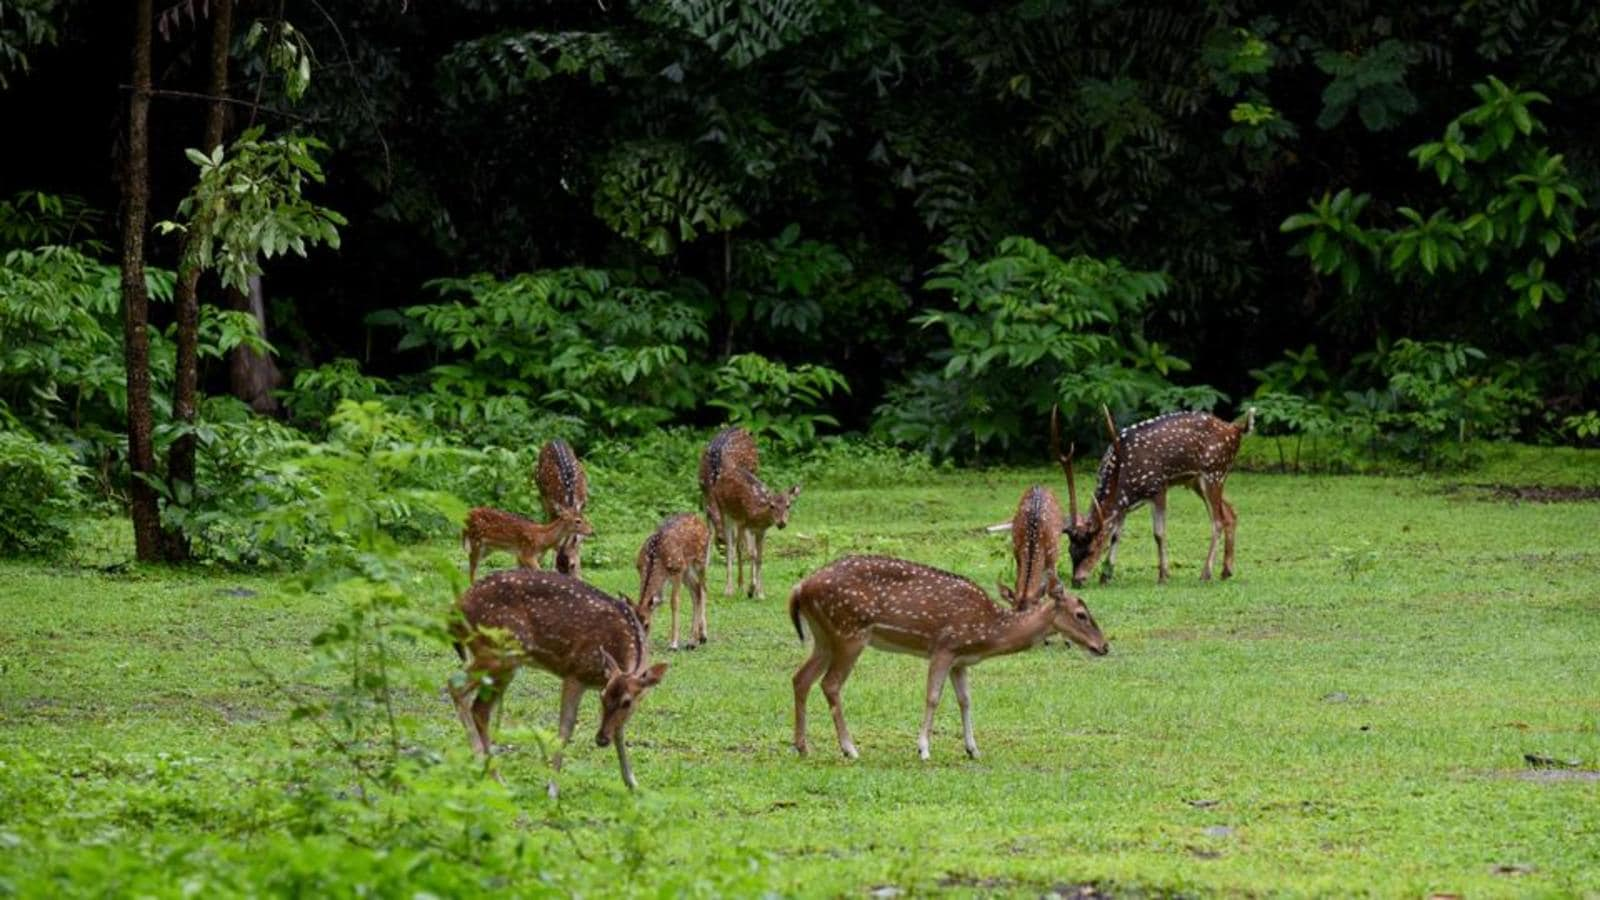 Mumbai's SGNP to get wildlife forensic laboratory by March 2022